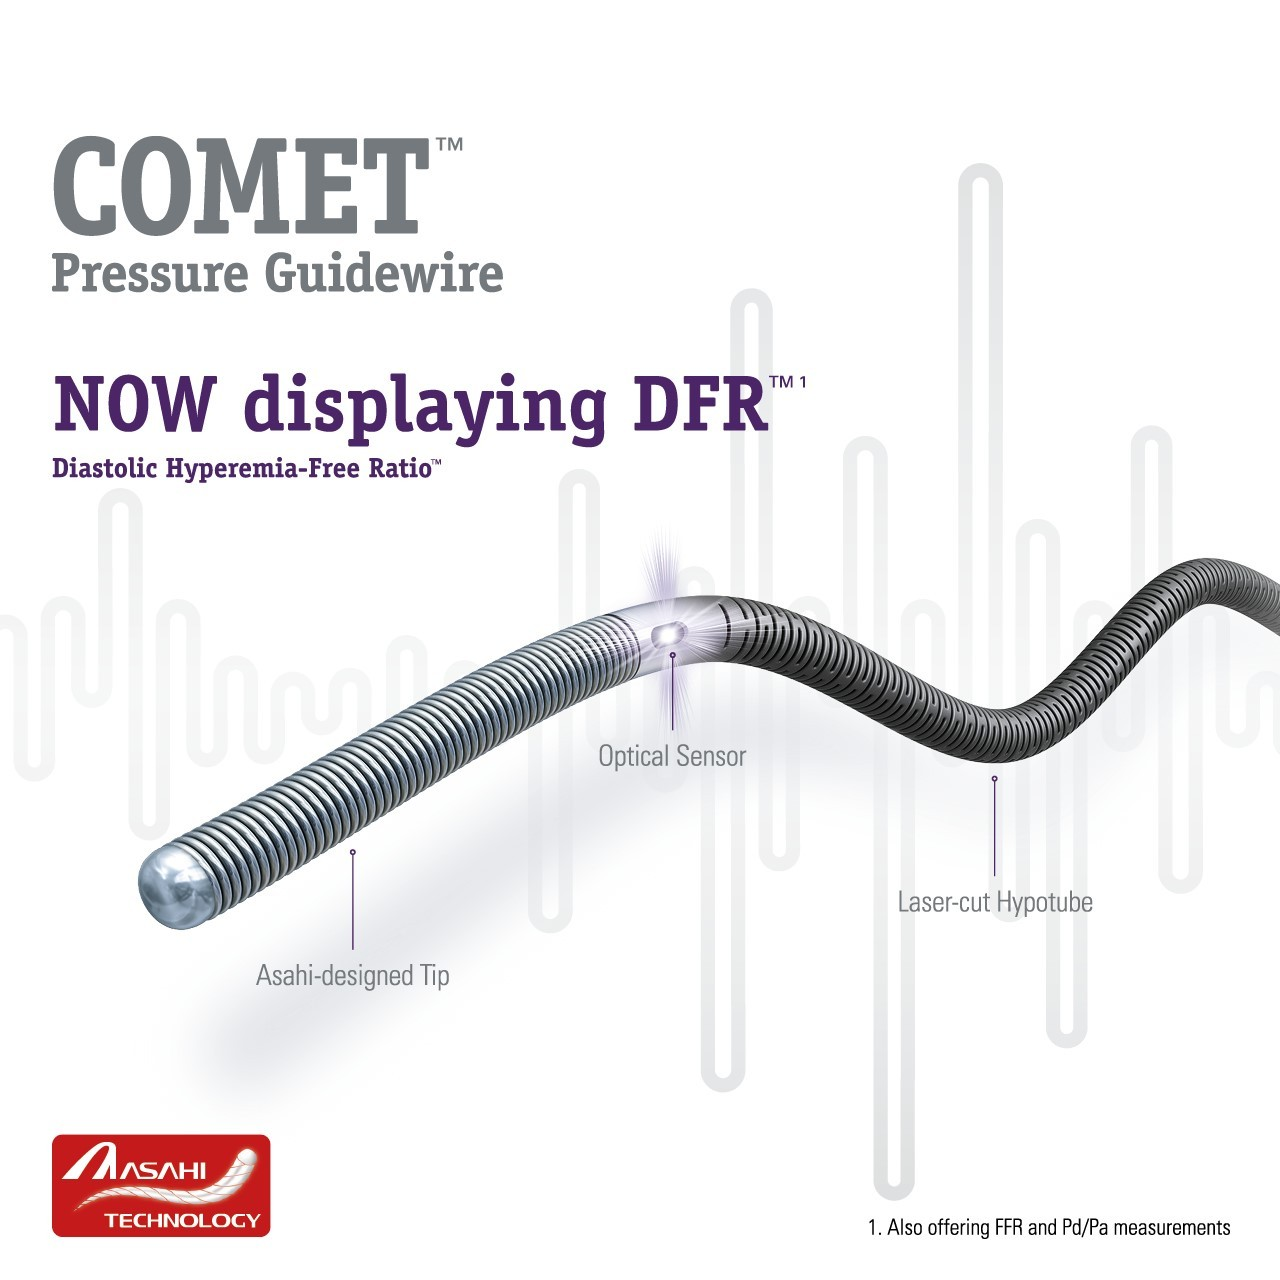 COMET™ Pressure Guidewire - Now displaying DFR™